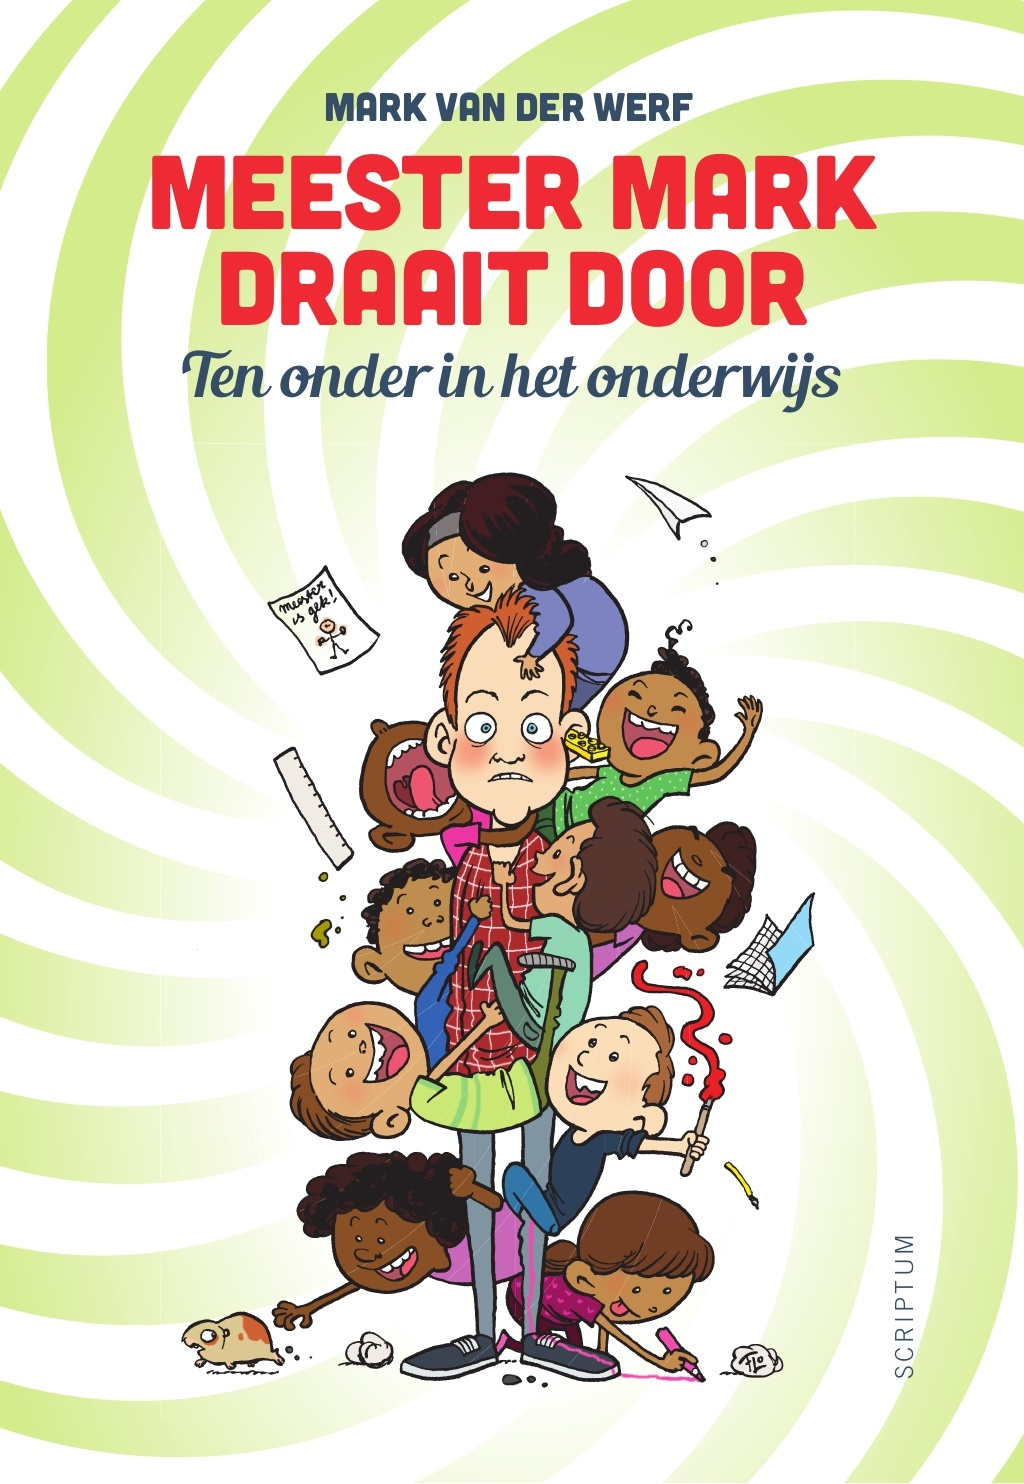 Review: Meester Mark draait door